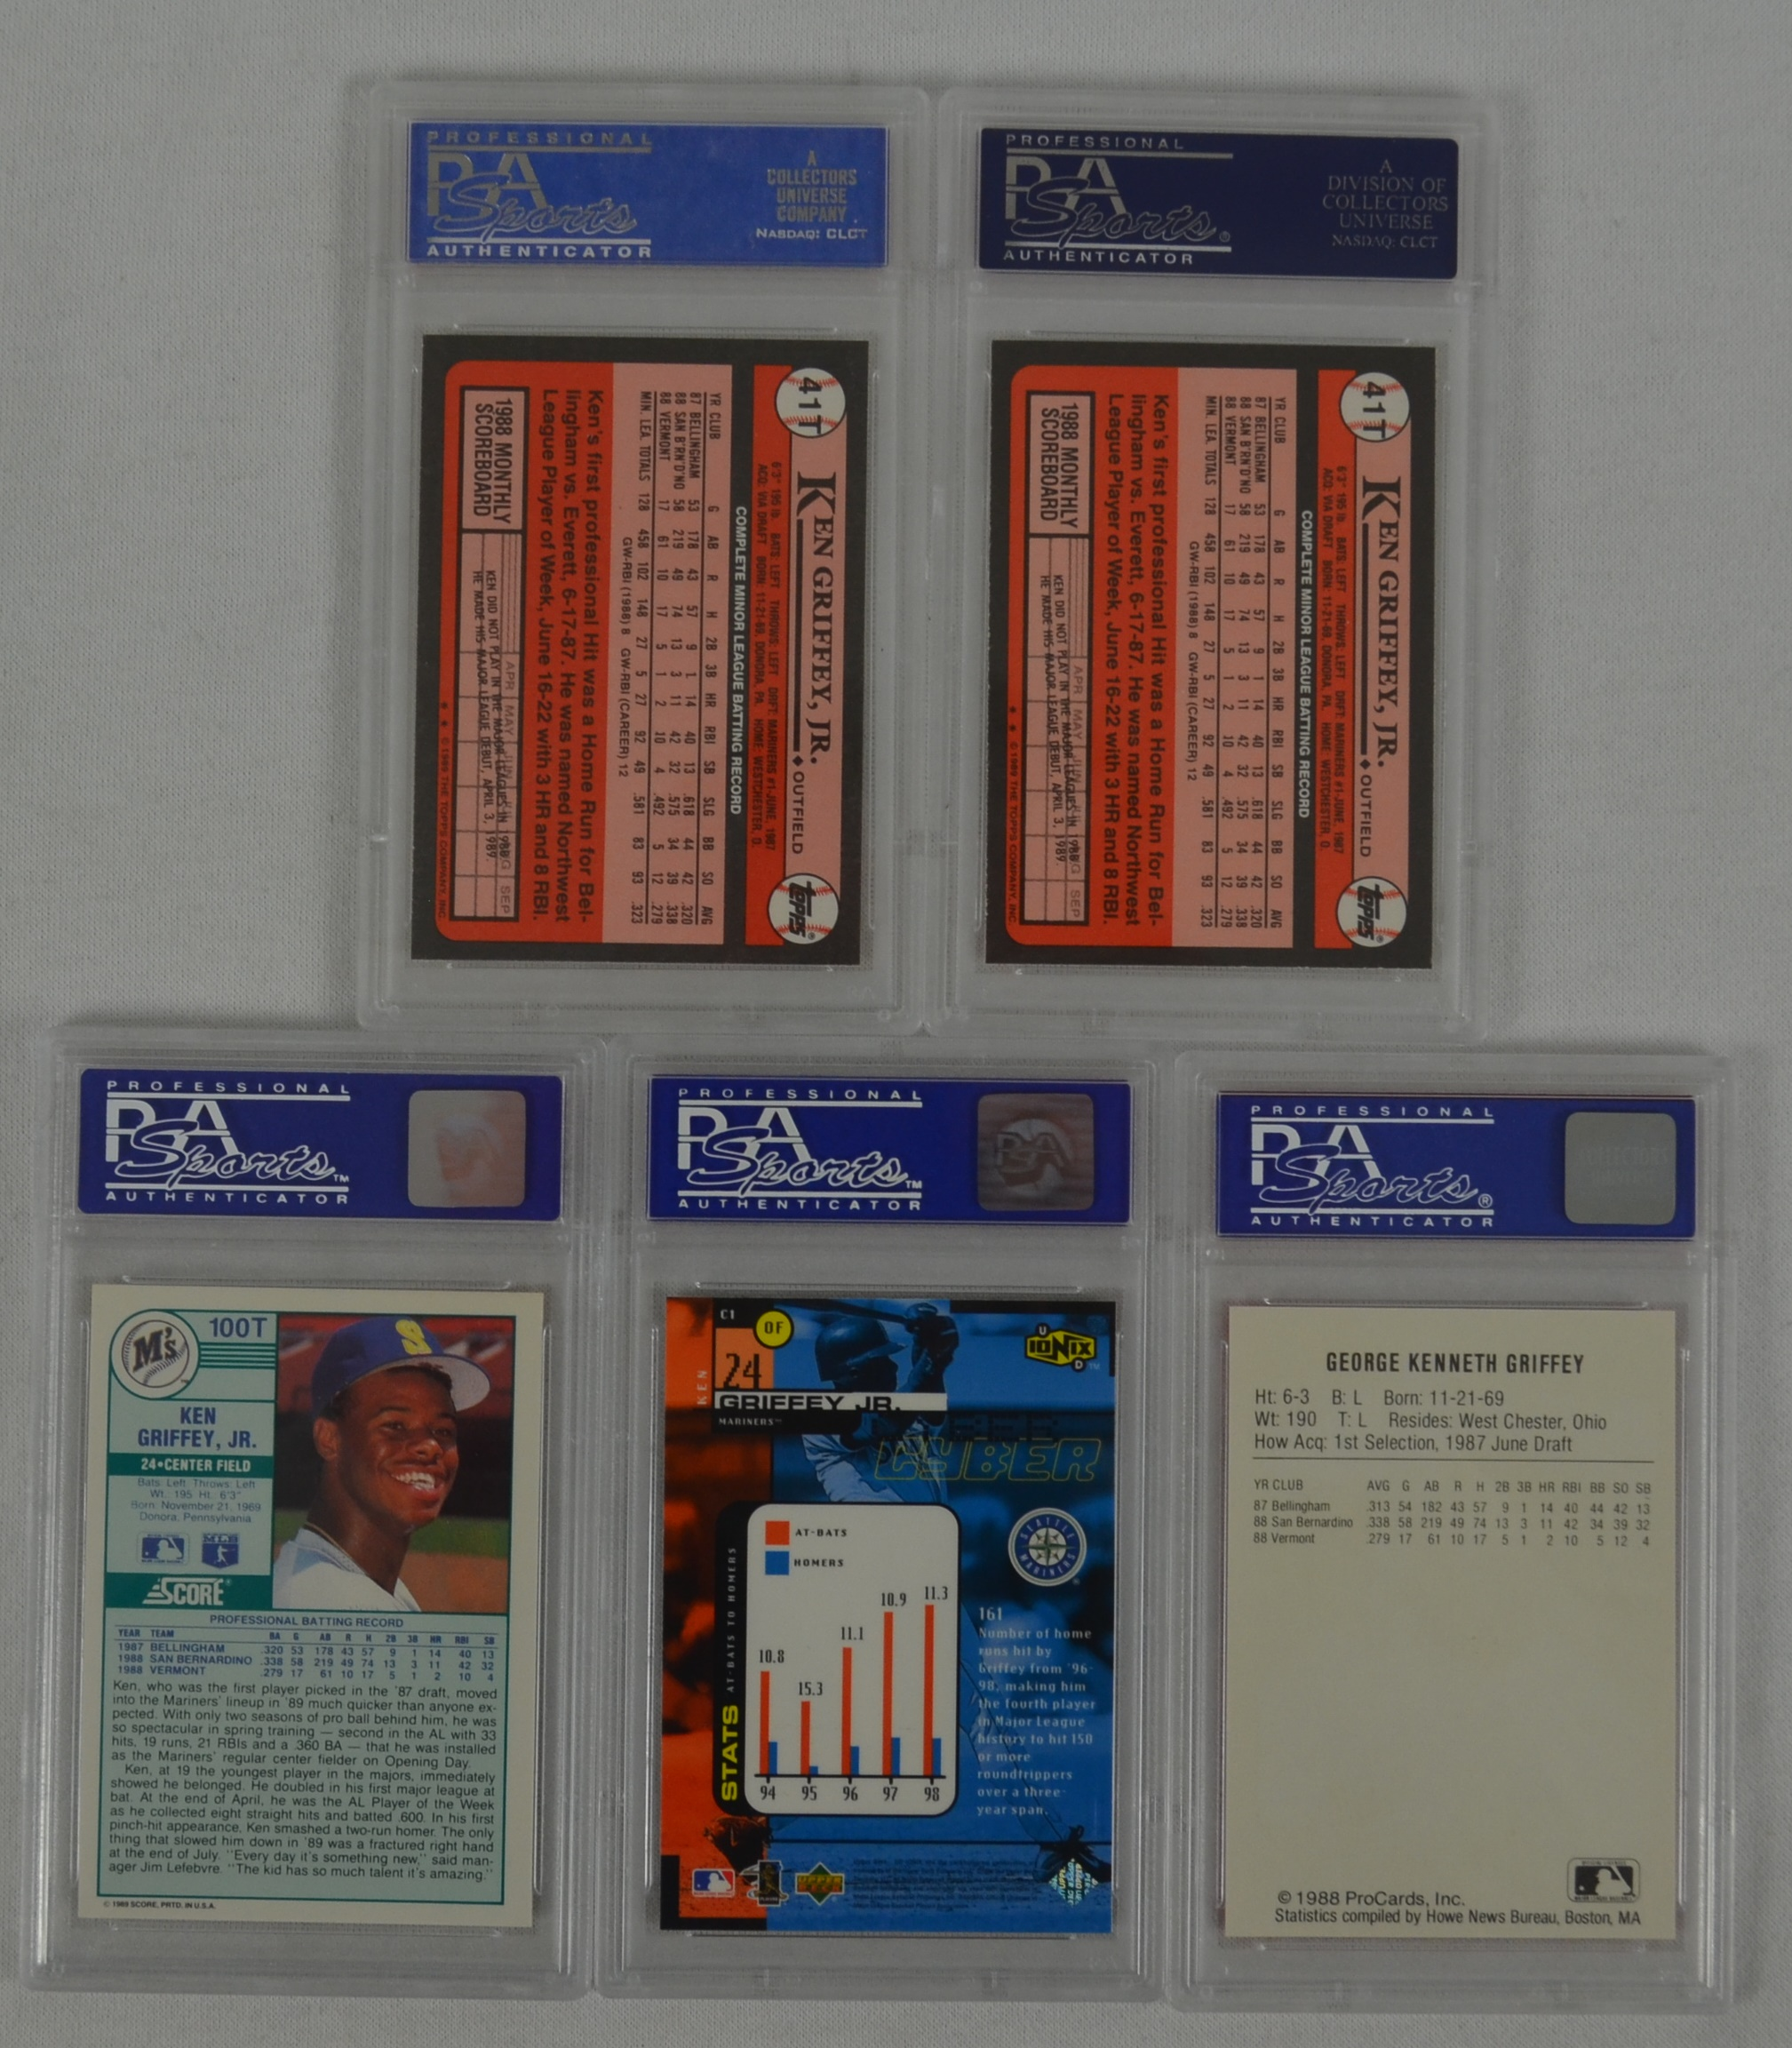 Lot Of 5 Rookie Baseball Cards With Ken Griffey Jr 1989: Ken Griffey Jr. Lot 5 PSA Graded Rookie Cards